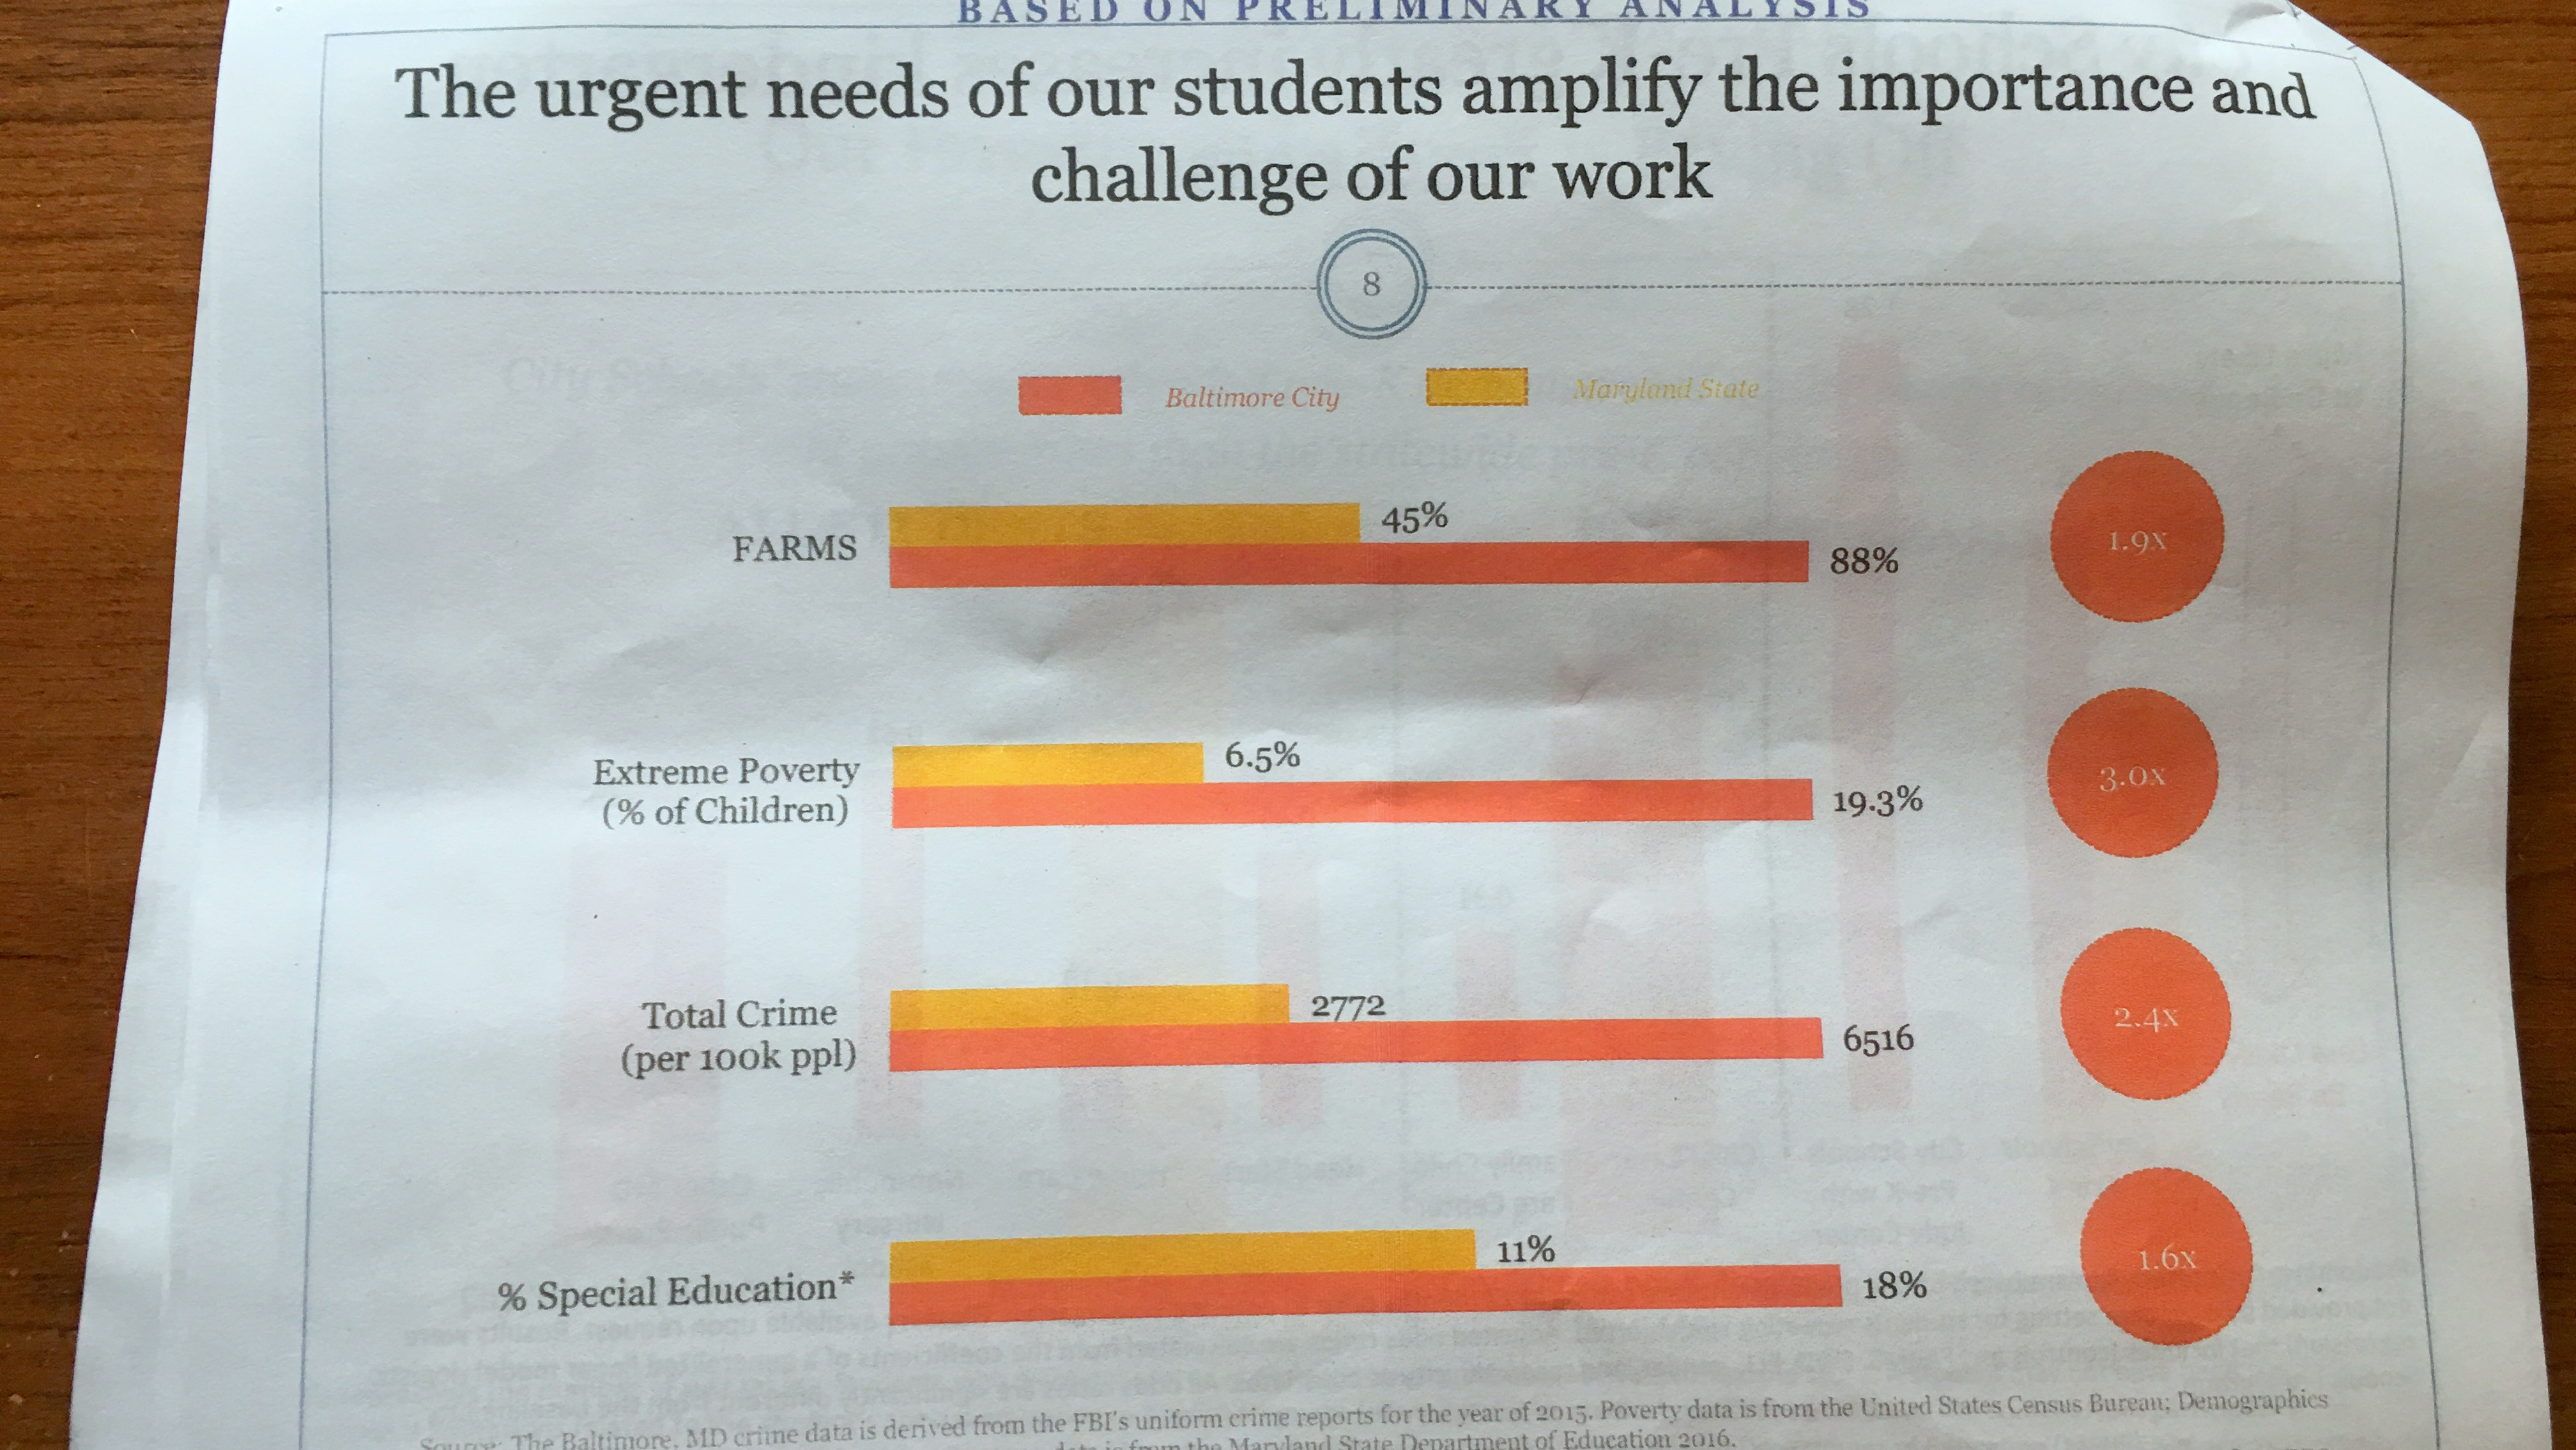 Higher rates of poverty and other issues drive up costs, Baltimore school officials said. (BCPS handout)